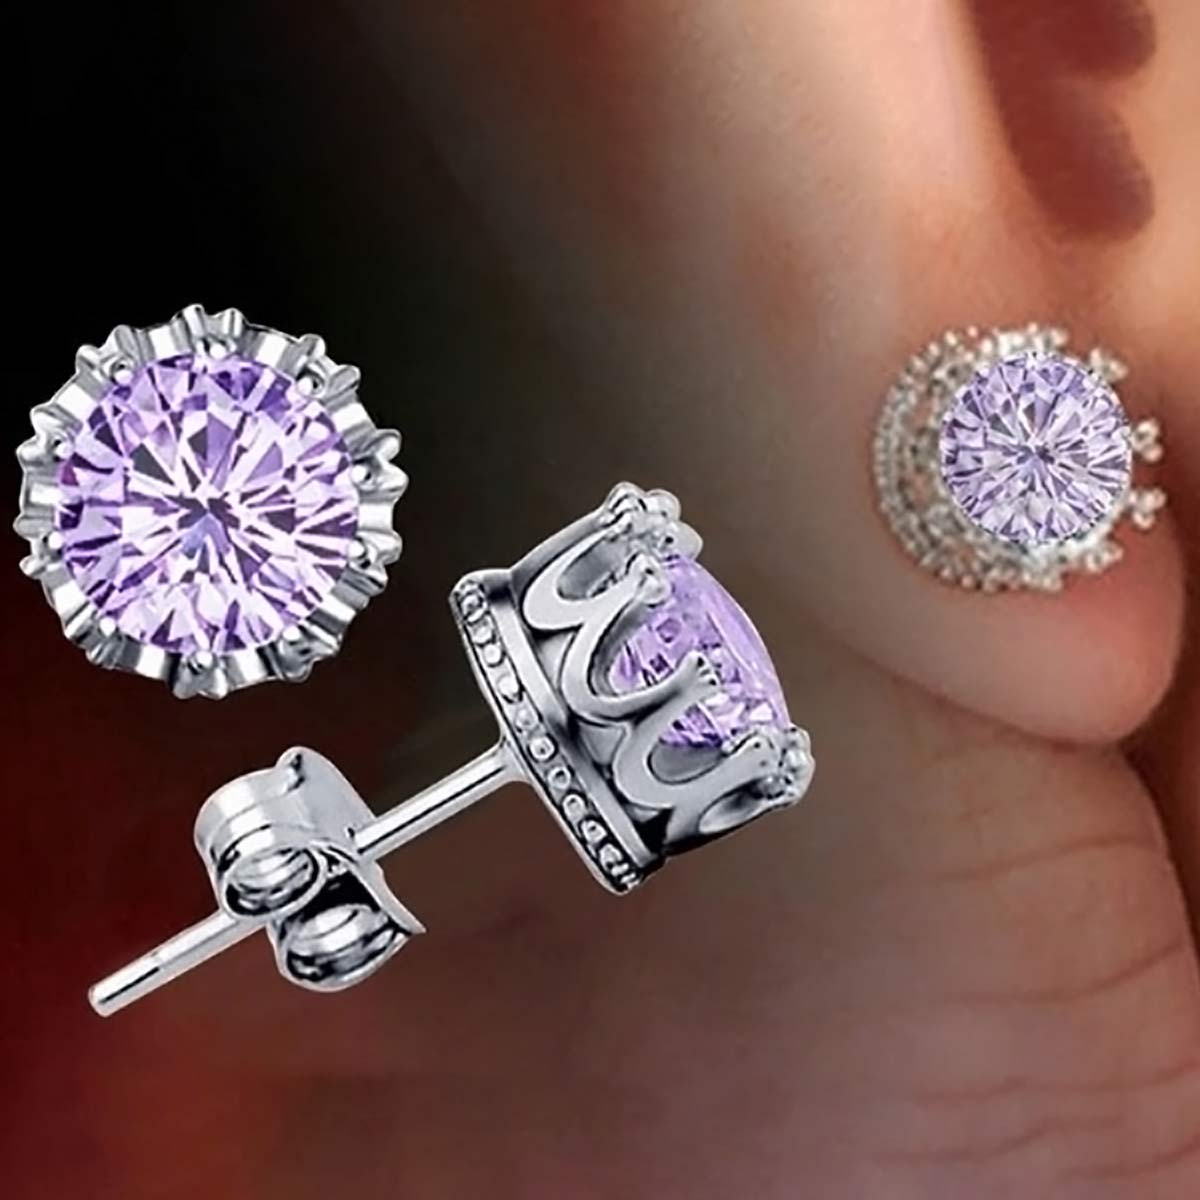 of earrings best stud collection fine diamond ellangelcollection awesome allezgisele diamonds crown jewelry